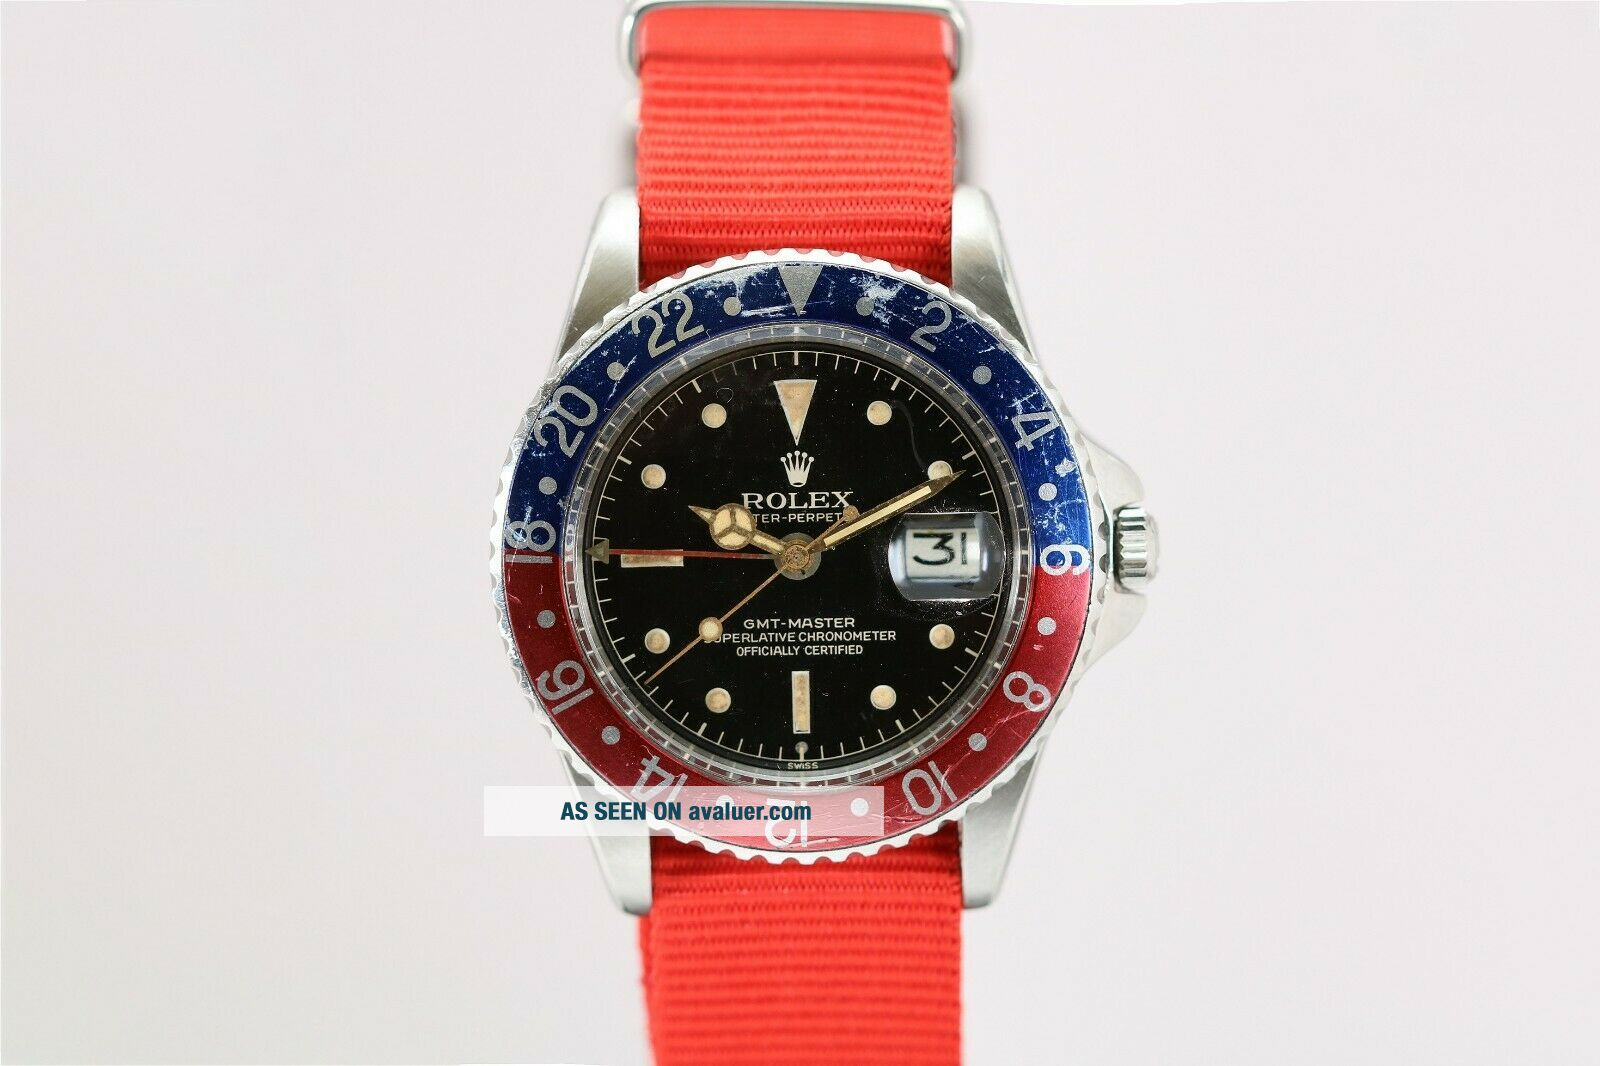 Rolex GMT Master 1675 Gilt Chapter Ring Pointed Crown Guard Vintage Watch,  1960s